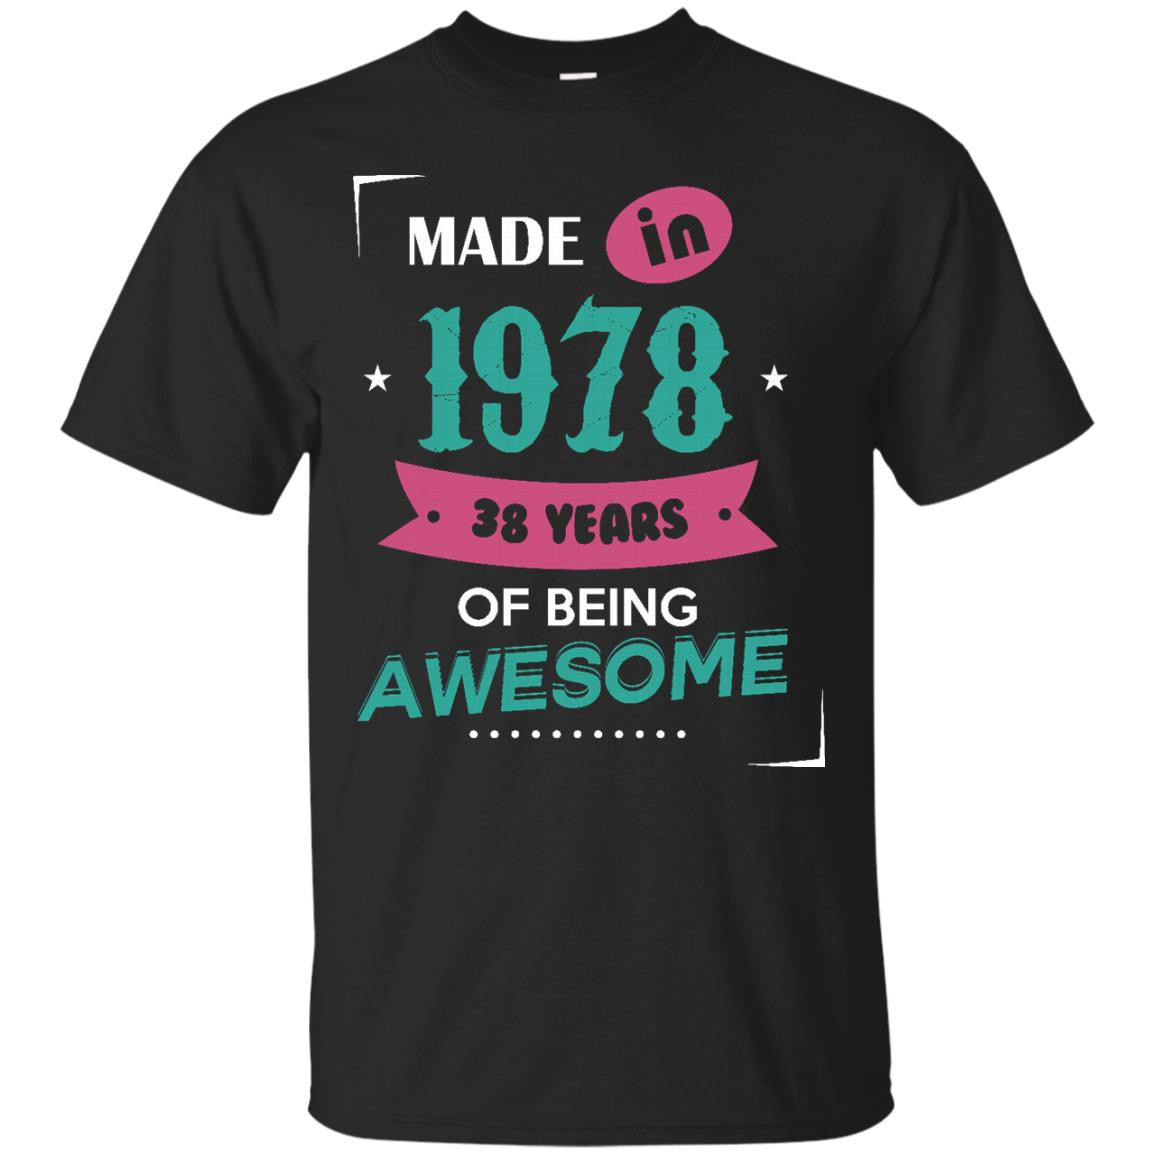 1978 Shirts Made In 1978 Of Being Awesome T-shirts Hoodies Sweatshirts